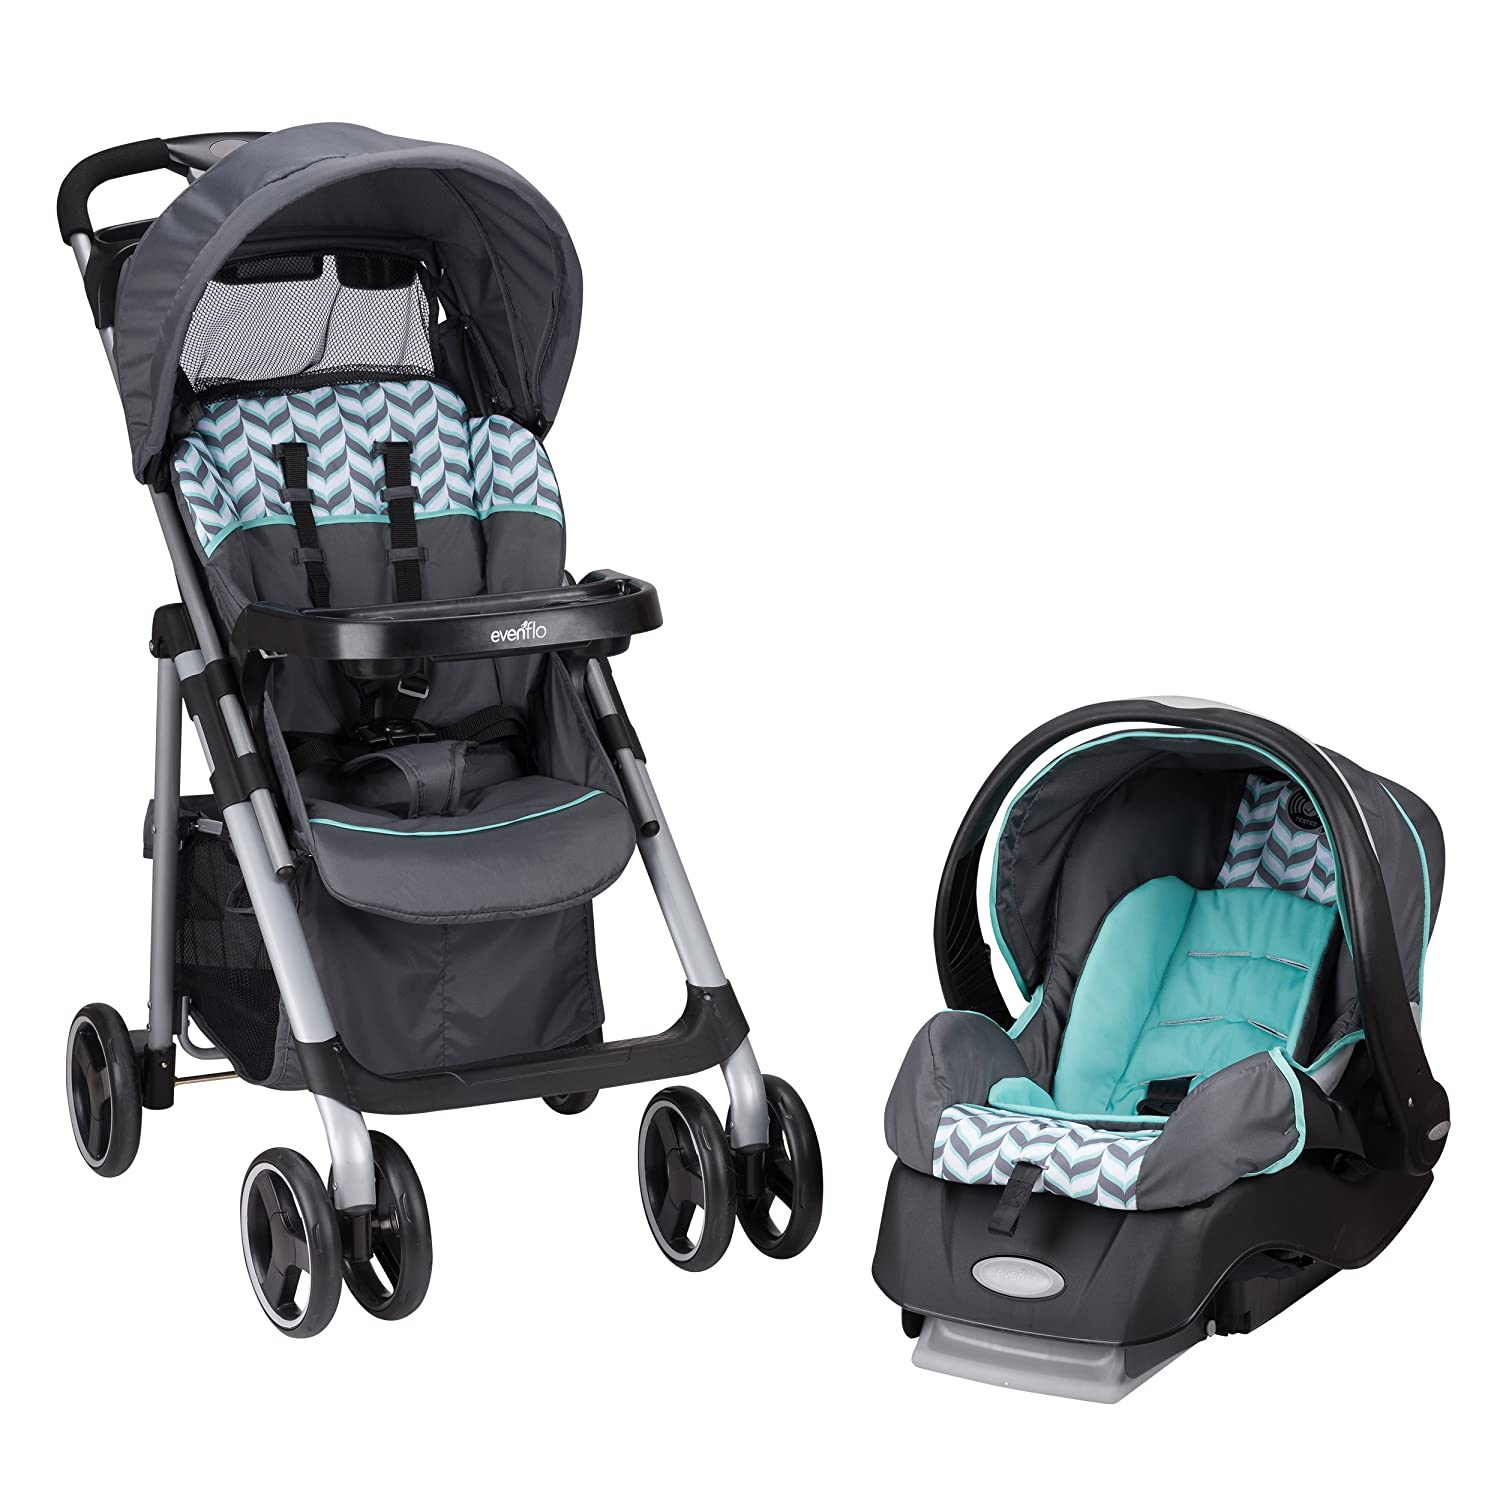 Evenflo Vive Travel System with Embrace Hayden Dot 55411874